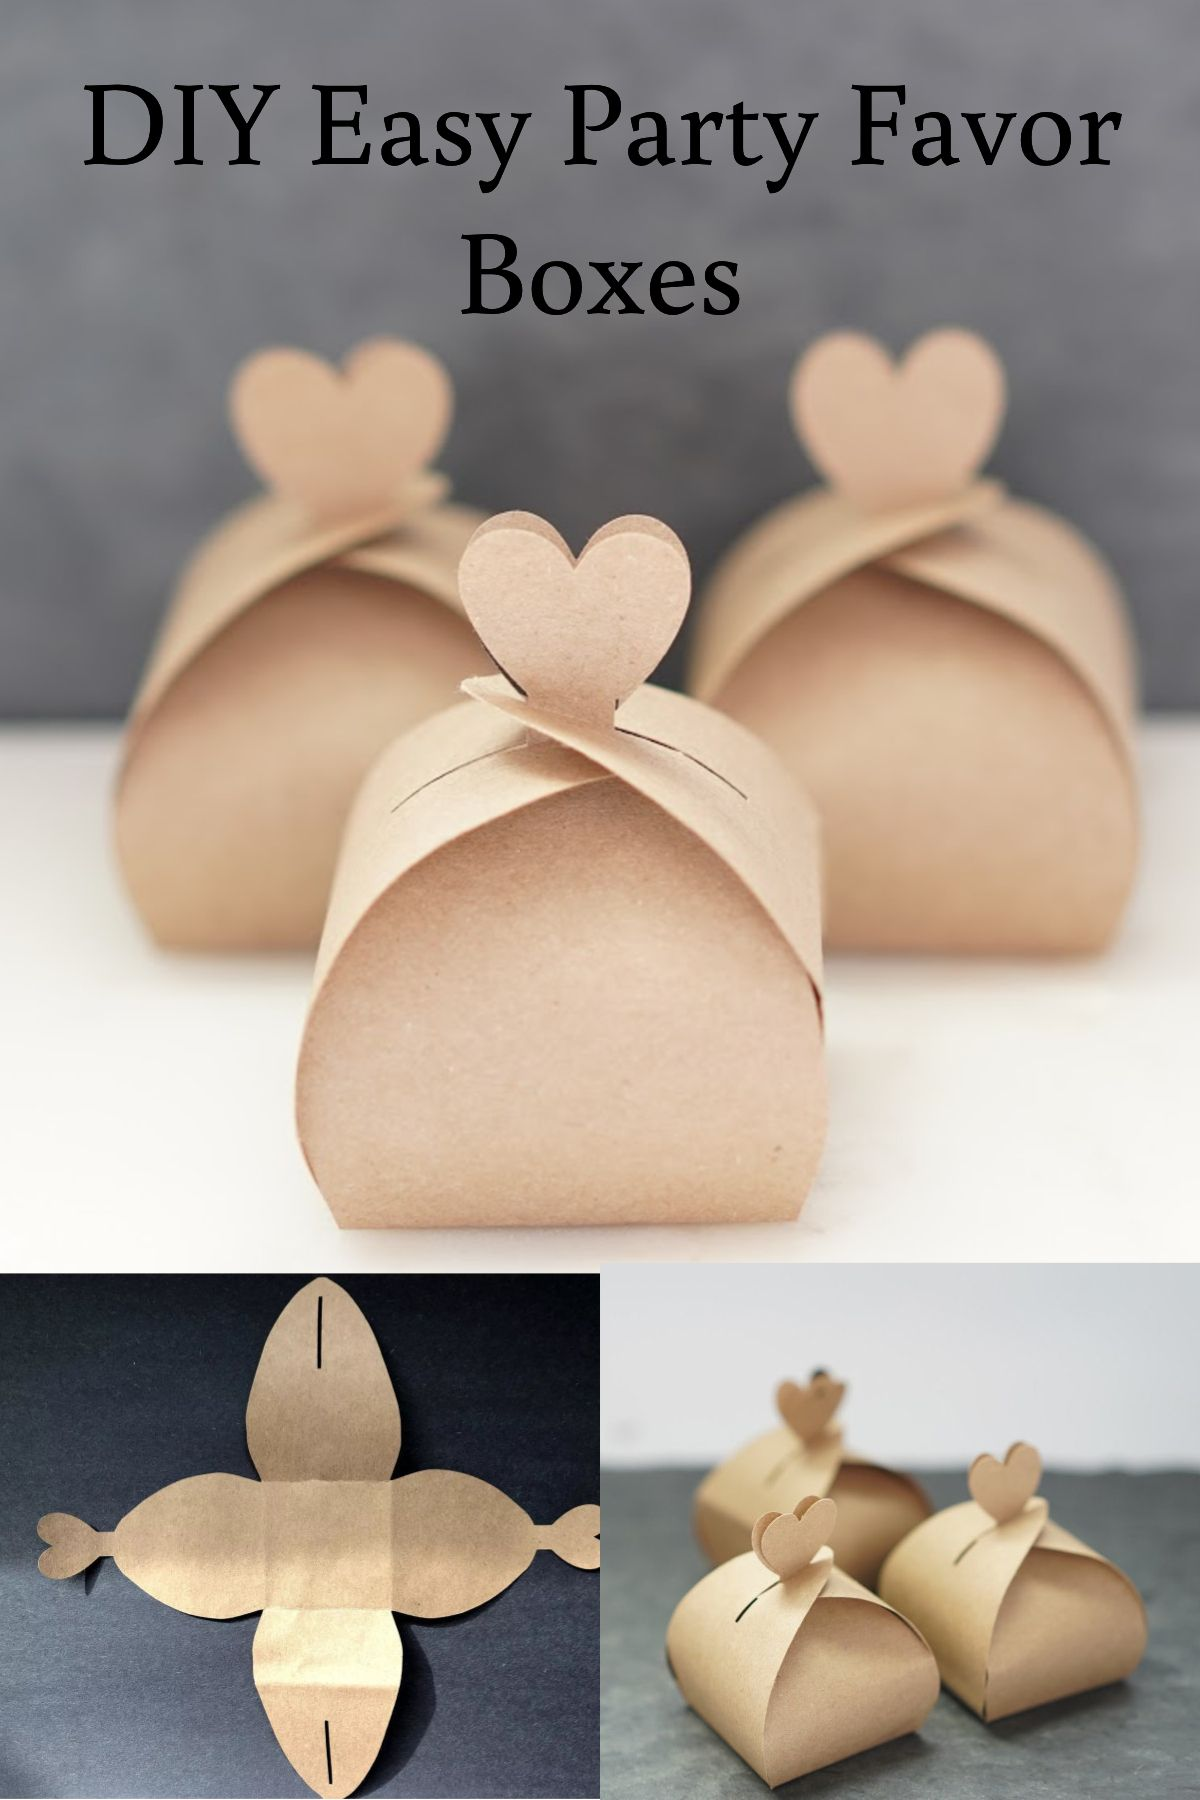 Diy Free Favors Gift Box Domestic Heights Diy Wedding On A Budget Diy Wedding Favors Cheap Easy Party Favor